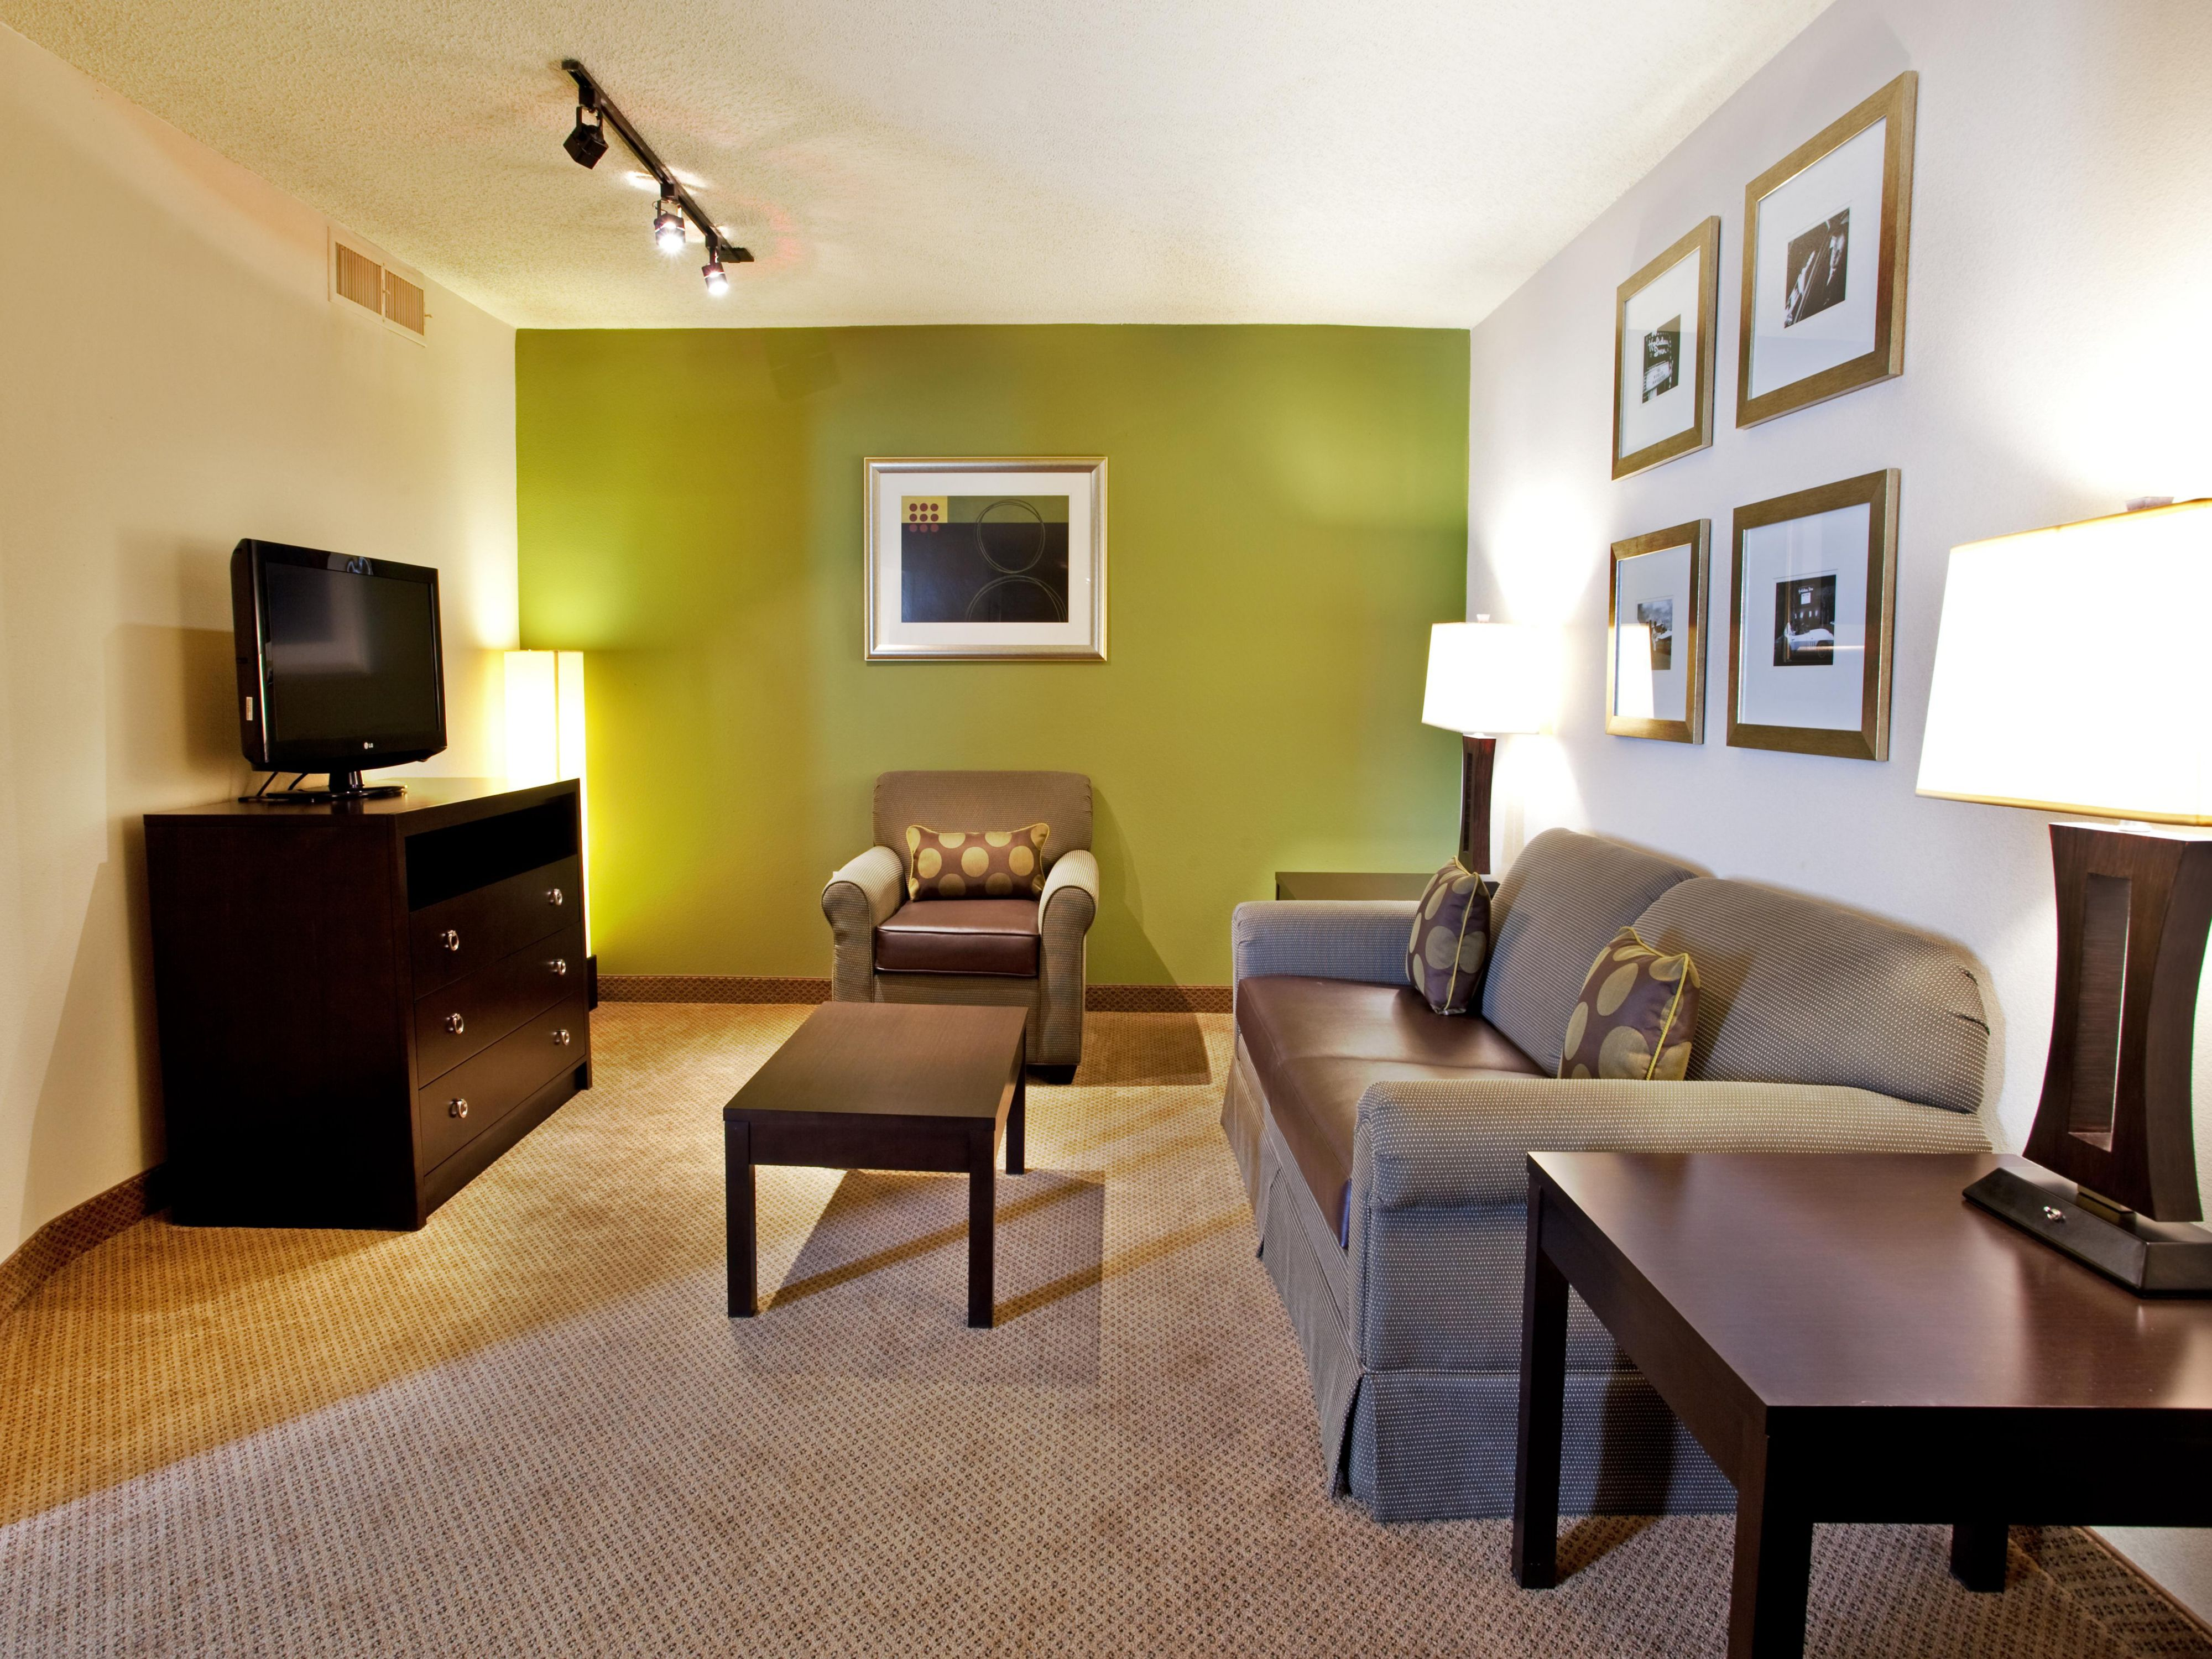 Spacious Junior Suites, perfect for the whole family or long stays